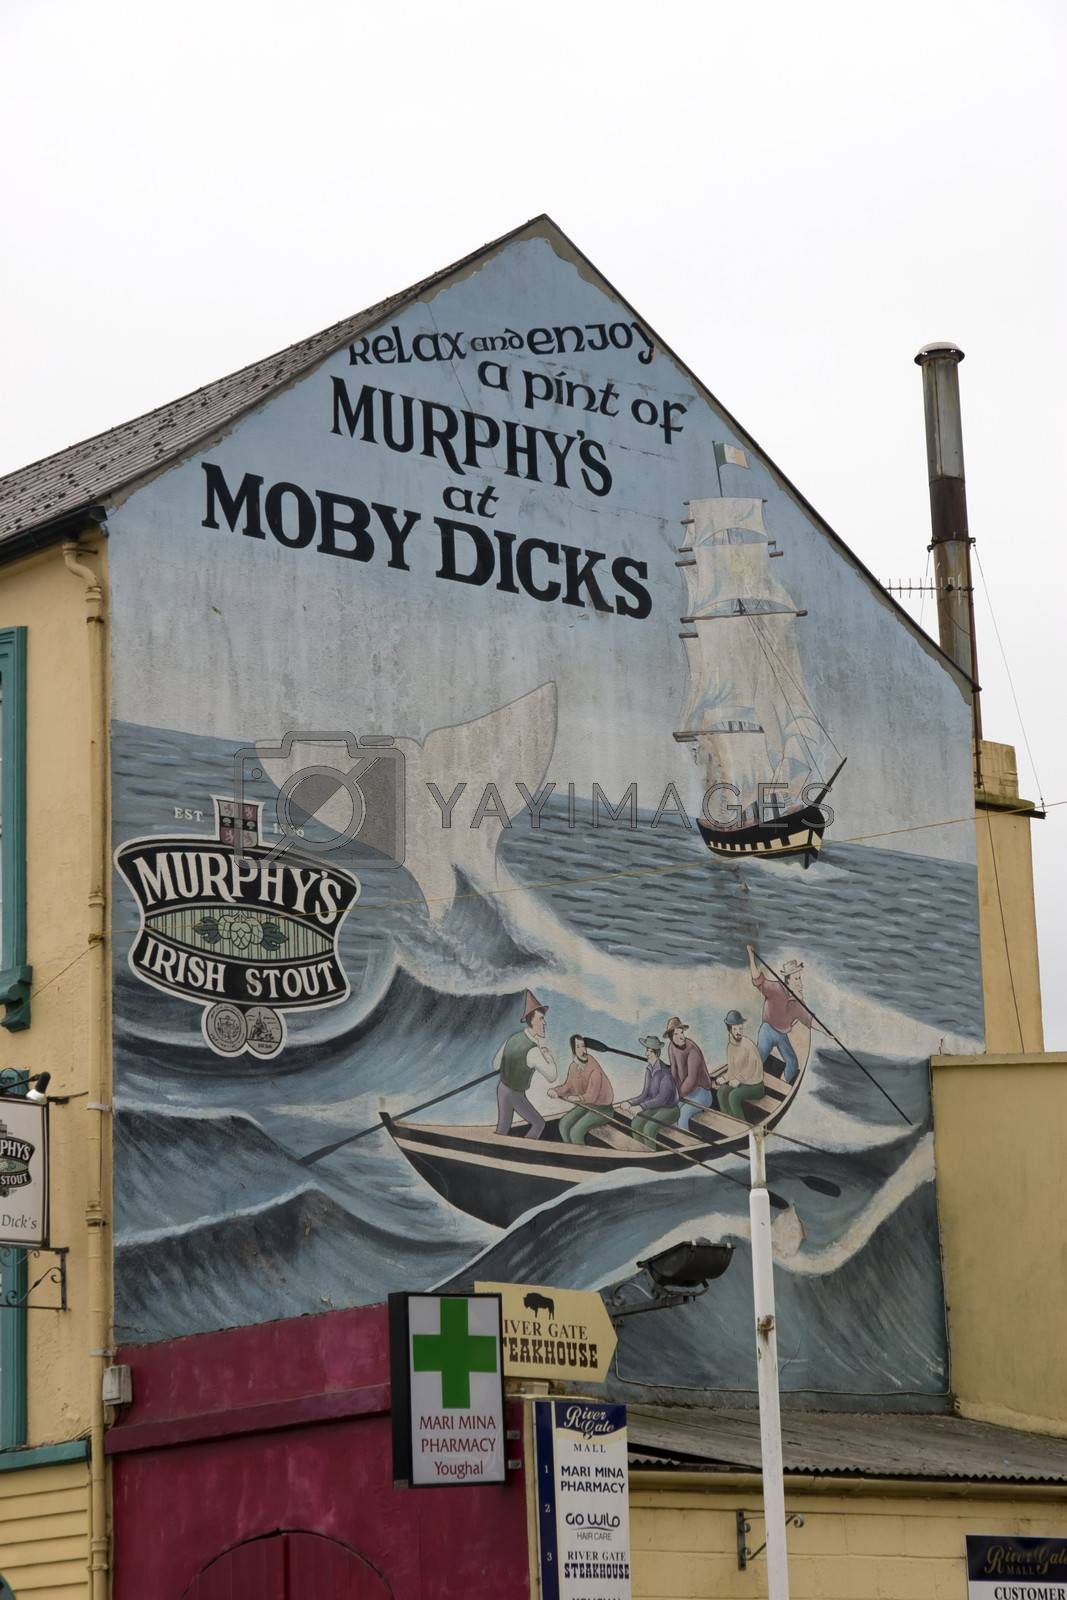 painted mural on the side of Moby dick's pub in Youghal county Cork Ireland